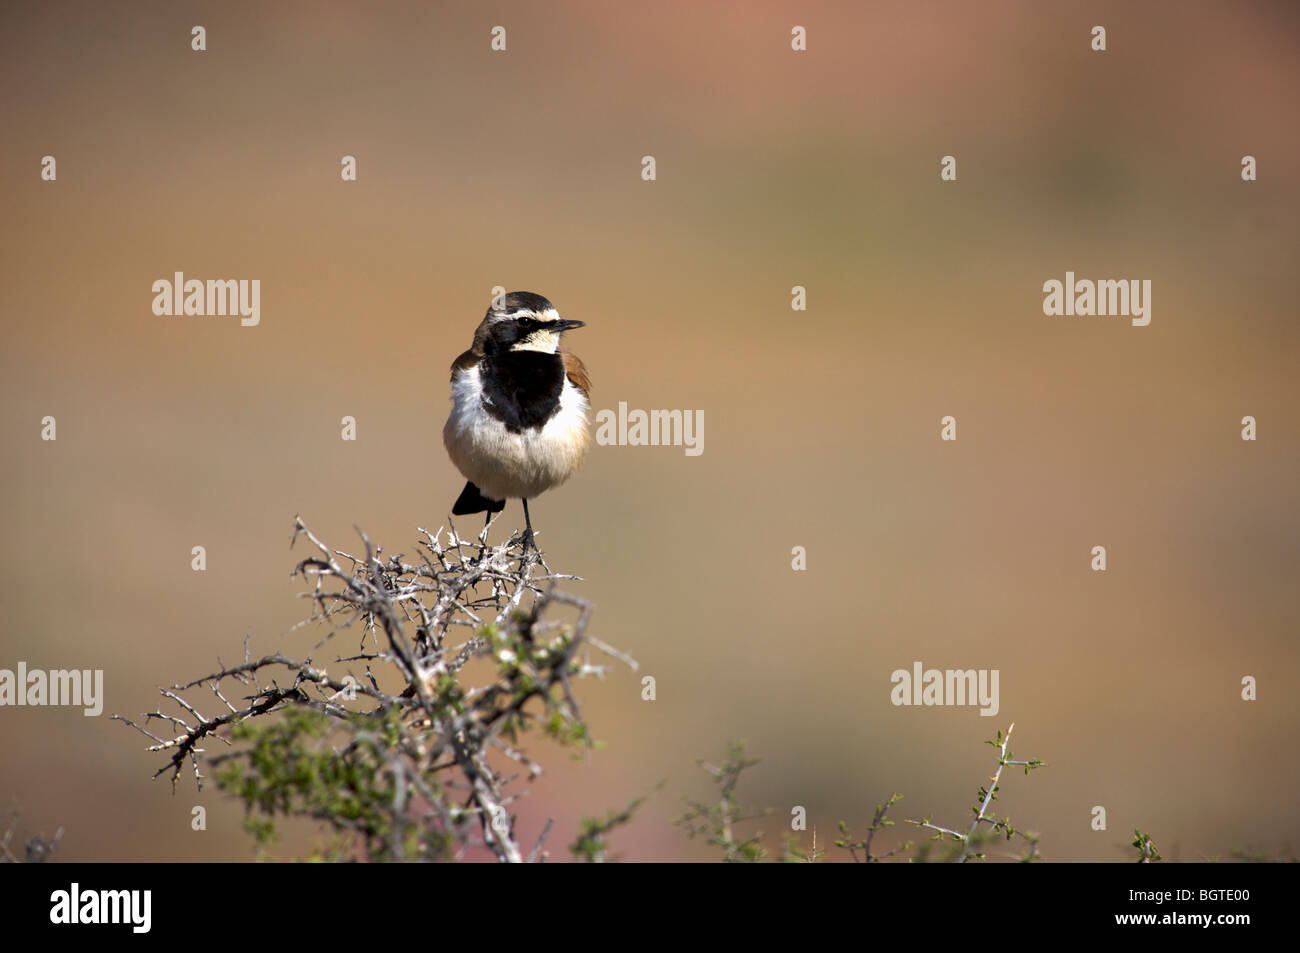 Capped Wheatear (Oenanthe pileata) sitting on a branch, Namaqualand, Northern Cape , South Africa - Stock Image